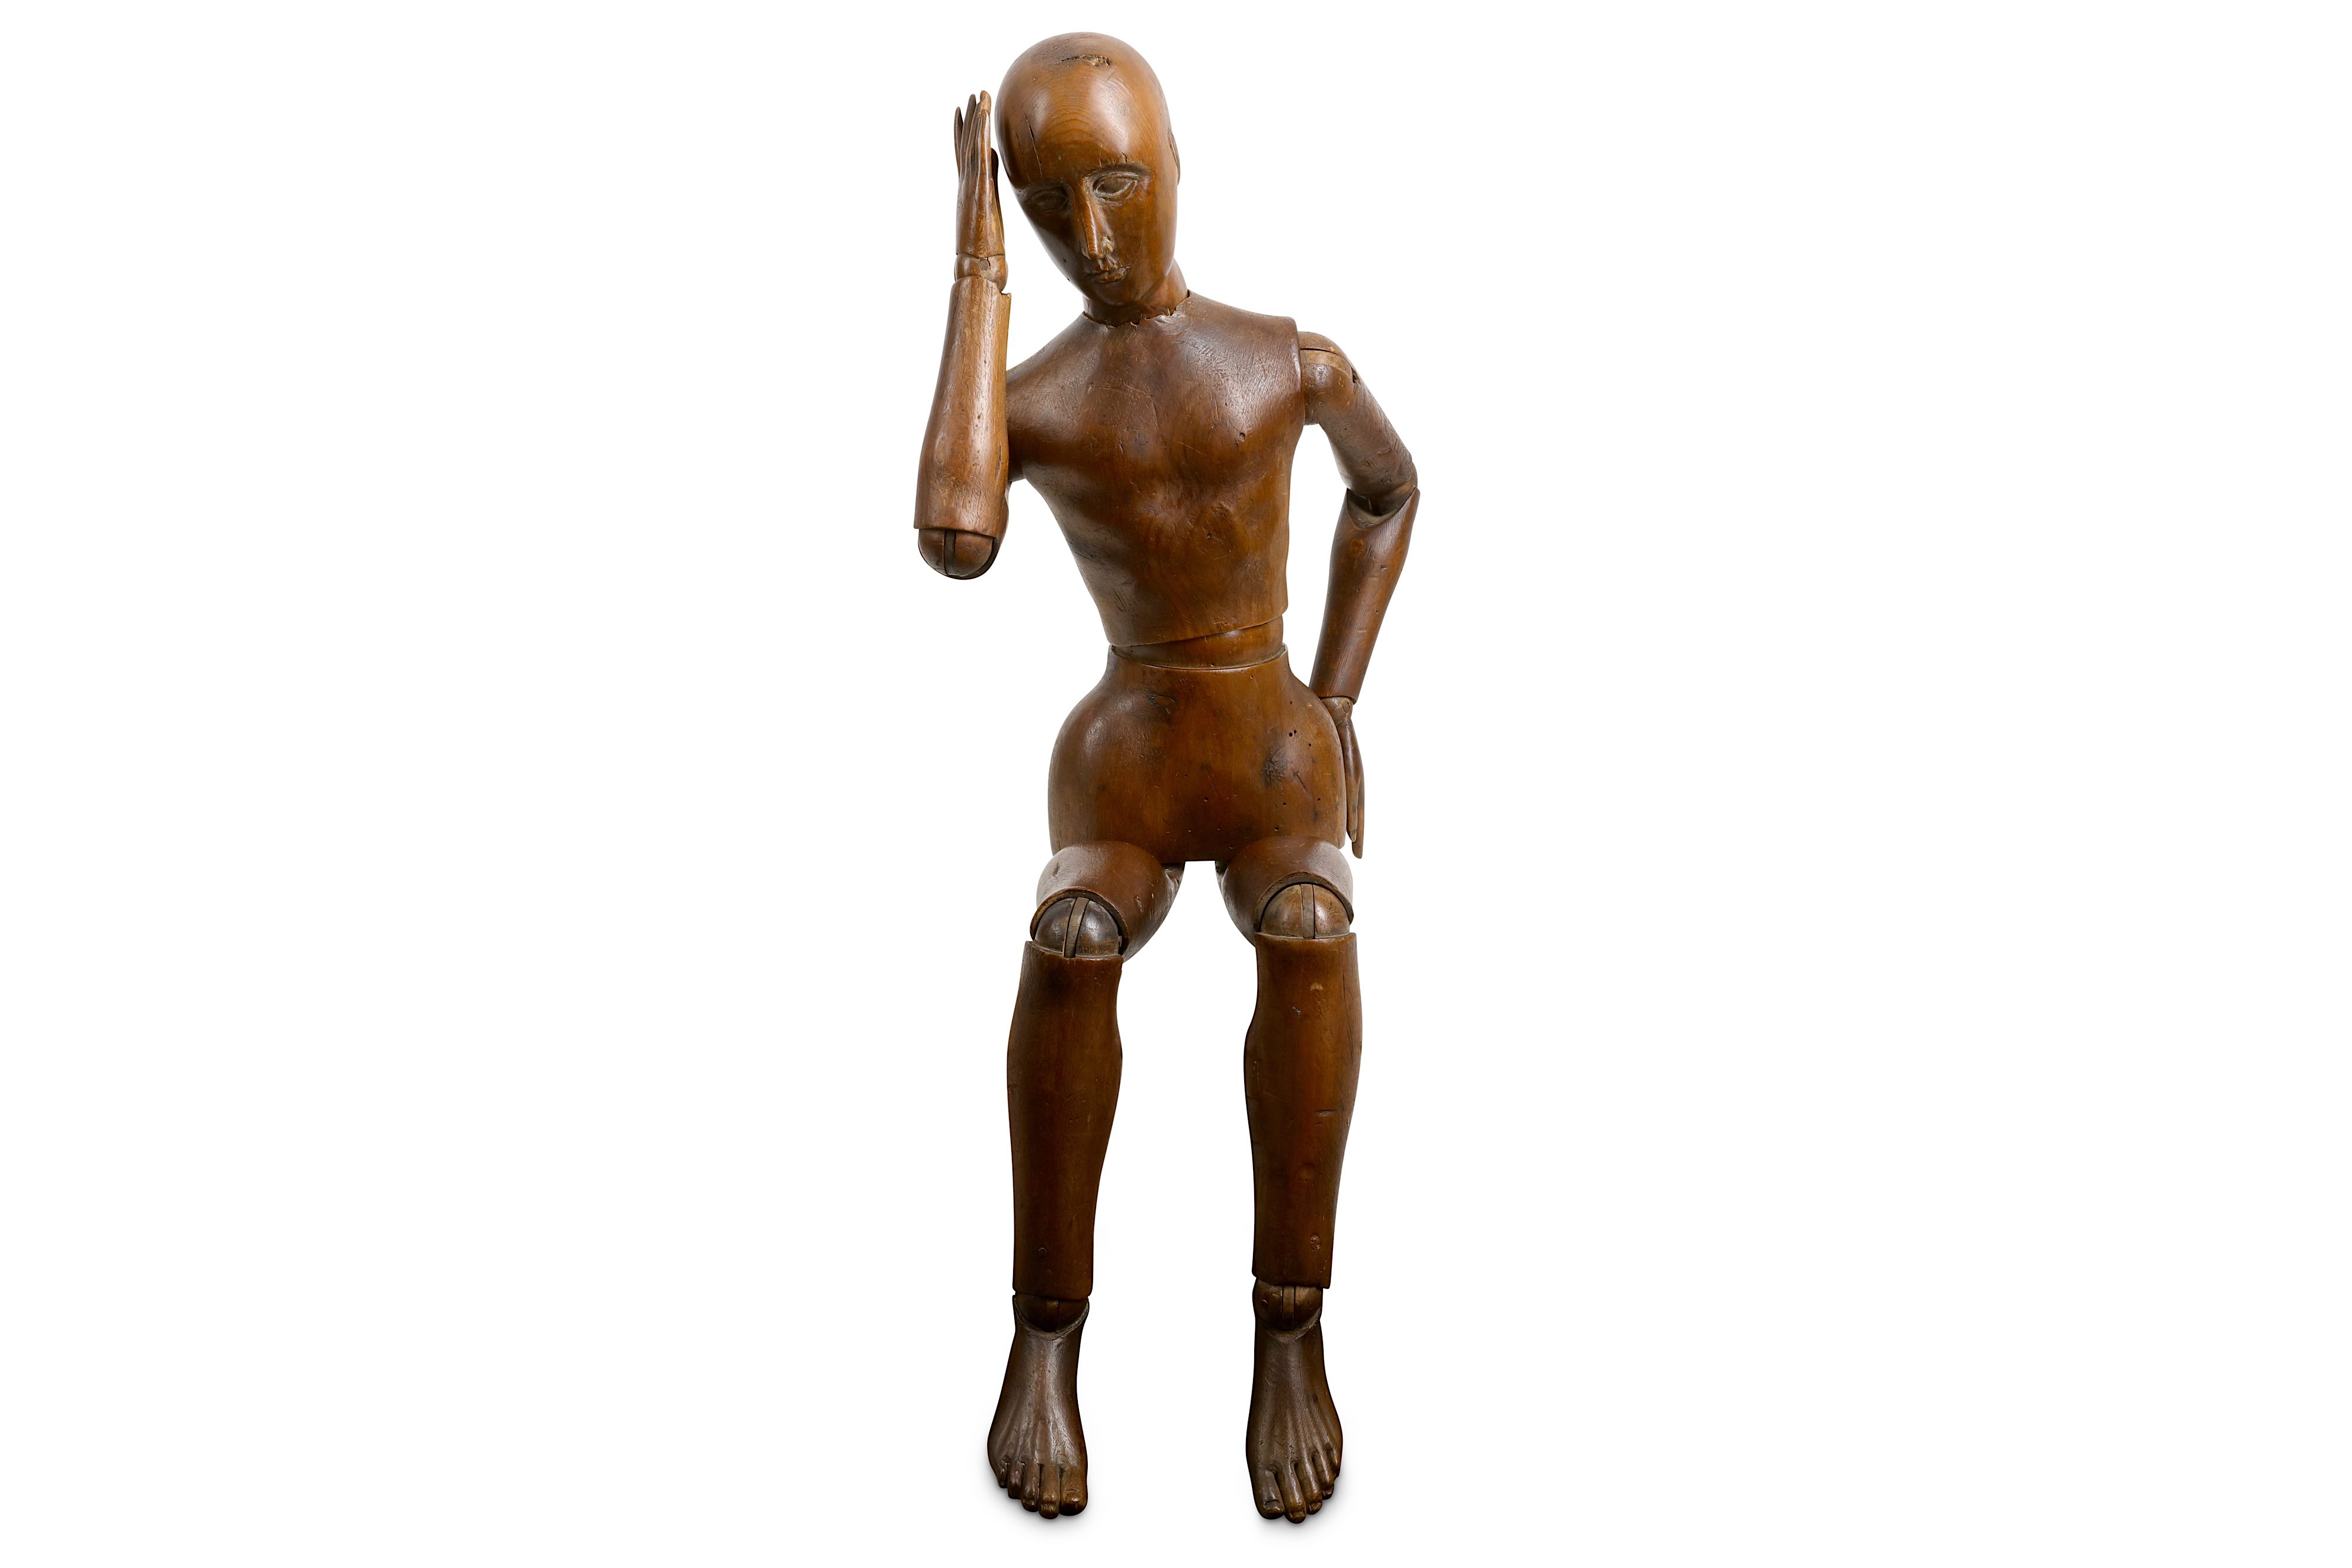 AN EARLY 20TH CENTURY CARVED AND STAINED WOOD LAY FIGURE OR ARTIST'S MANNEQUIN - Image 4 of 4